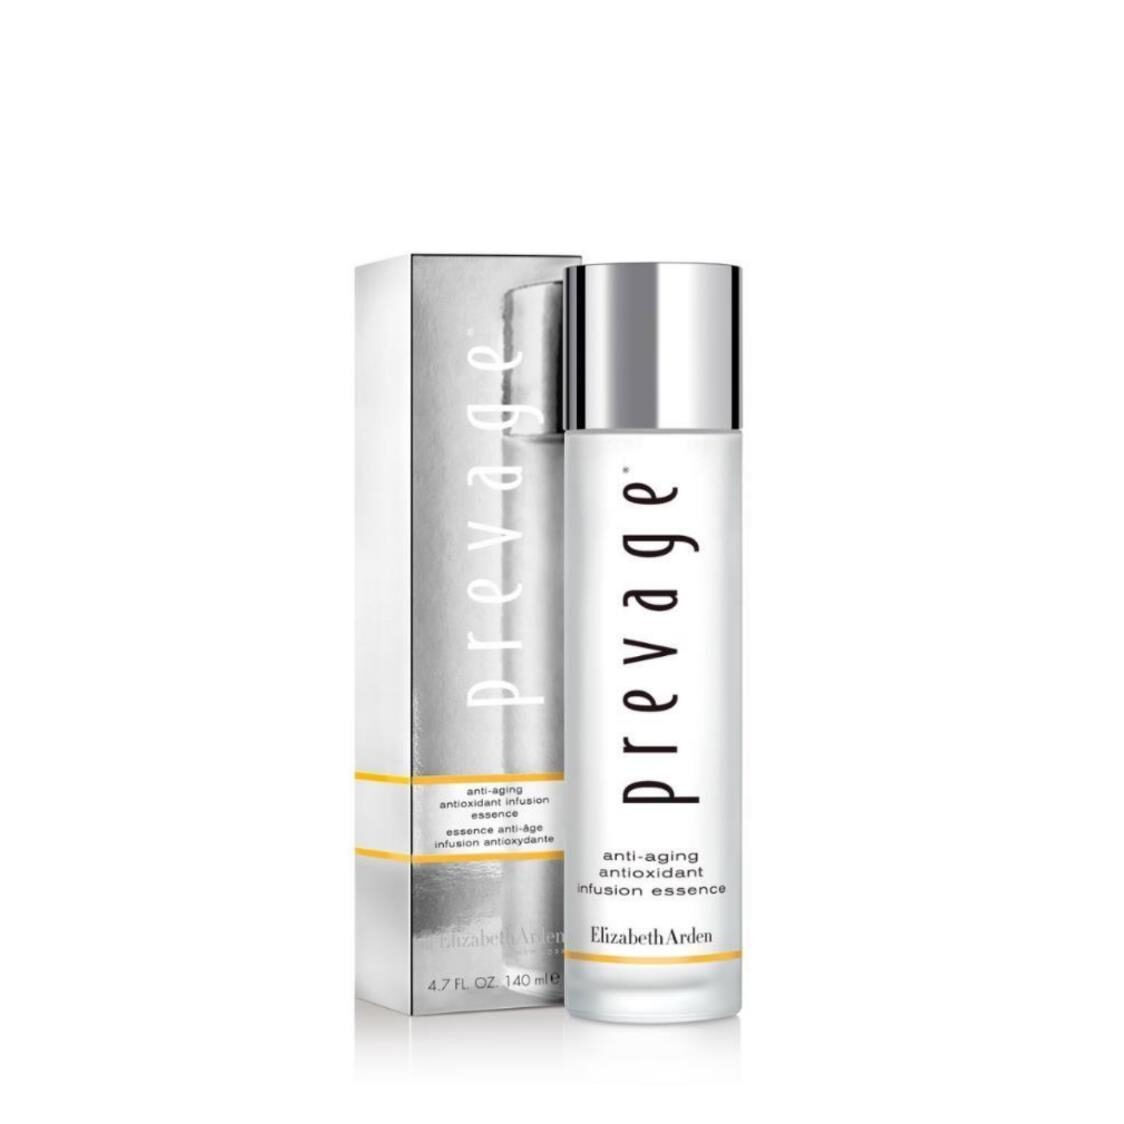 PREVAGE Anti-aging Antioxidant Infusion Essence 150ml